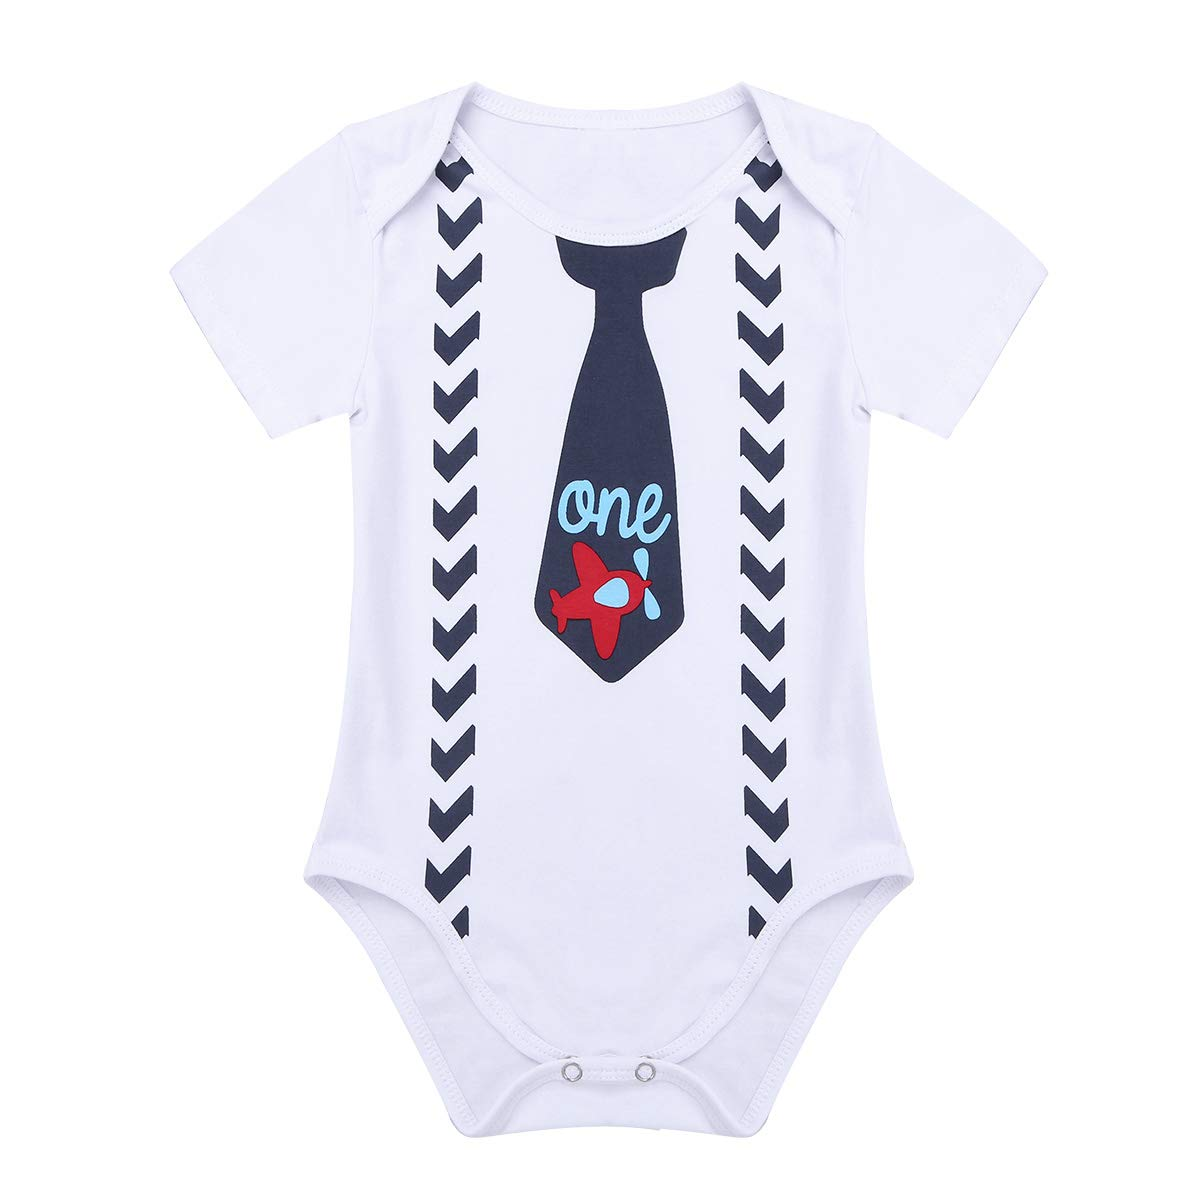 FEESHOW Baby Boys 1st Birthday Outfit Short Sleeve Bodysuit One Piece Gentleman Romper Suspender Straps with Bow-tie